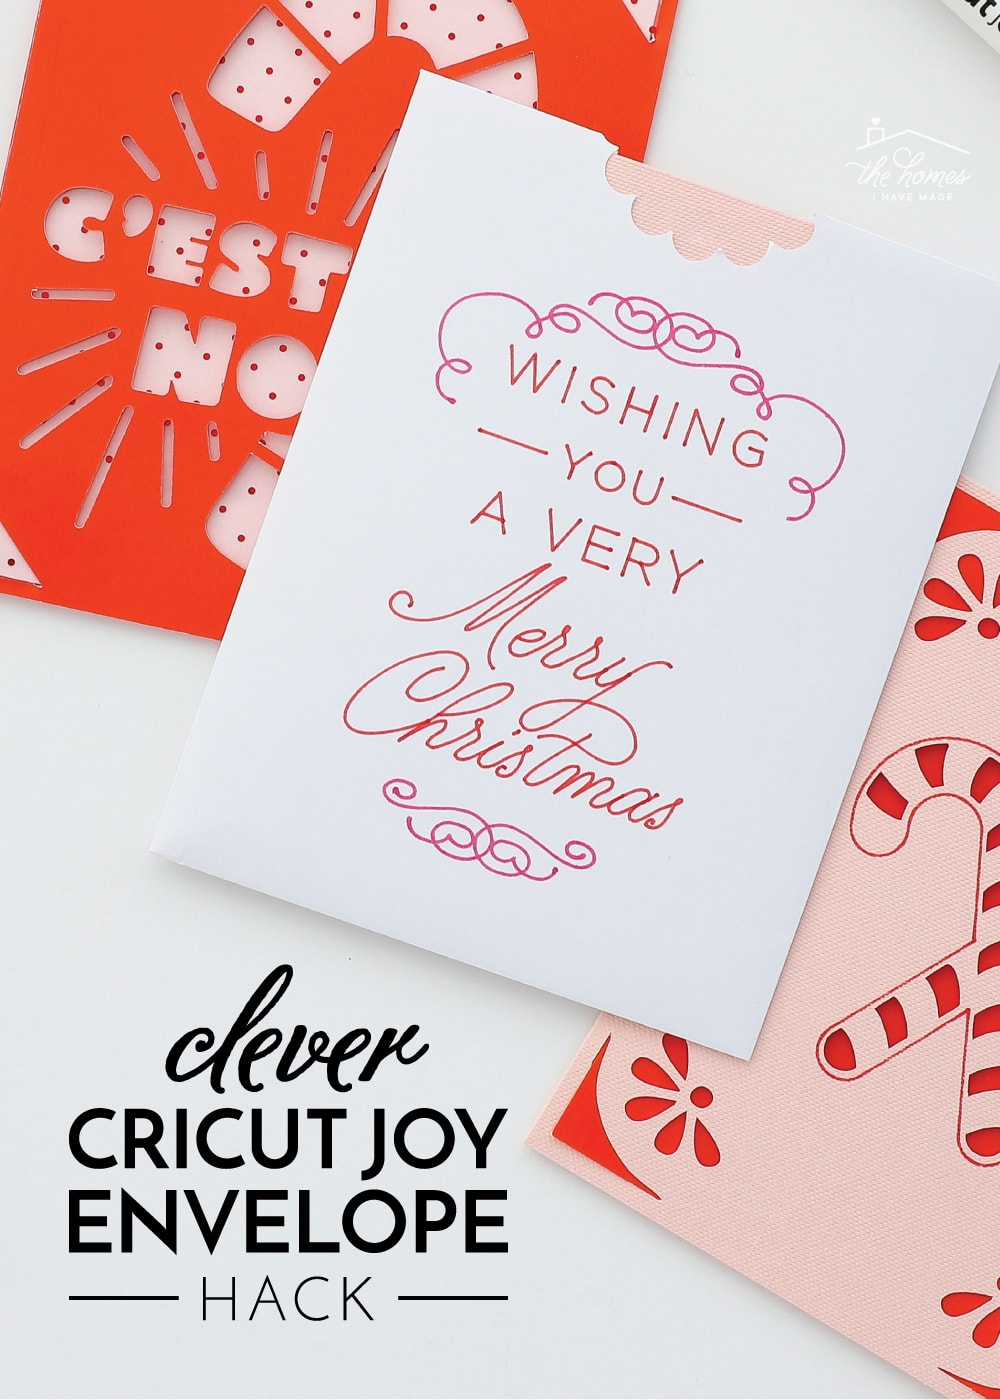 Cricut Joy Card Envelope Hack